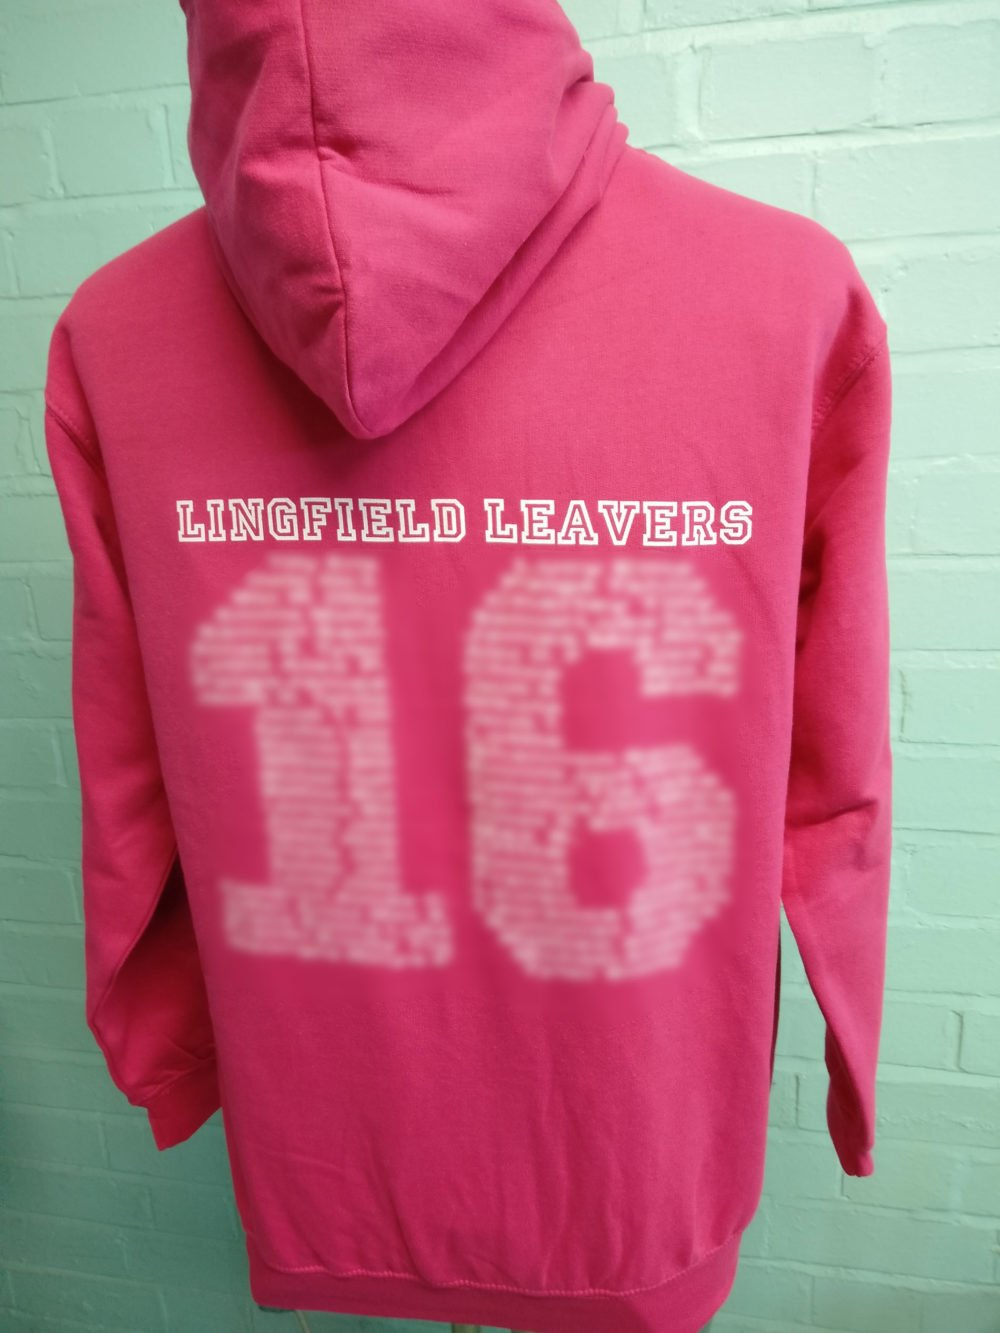 Lingfield Leavers 2016 Zippy Hoodies